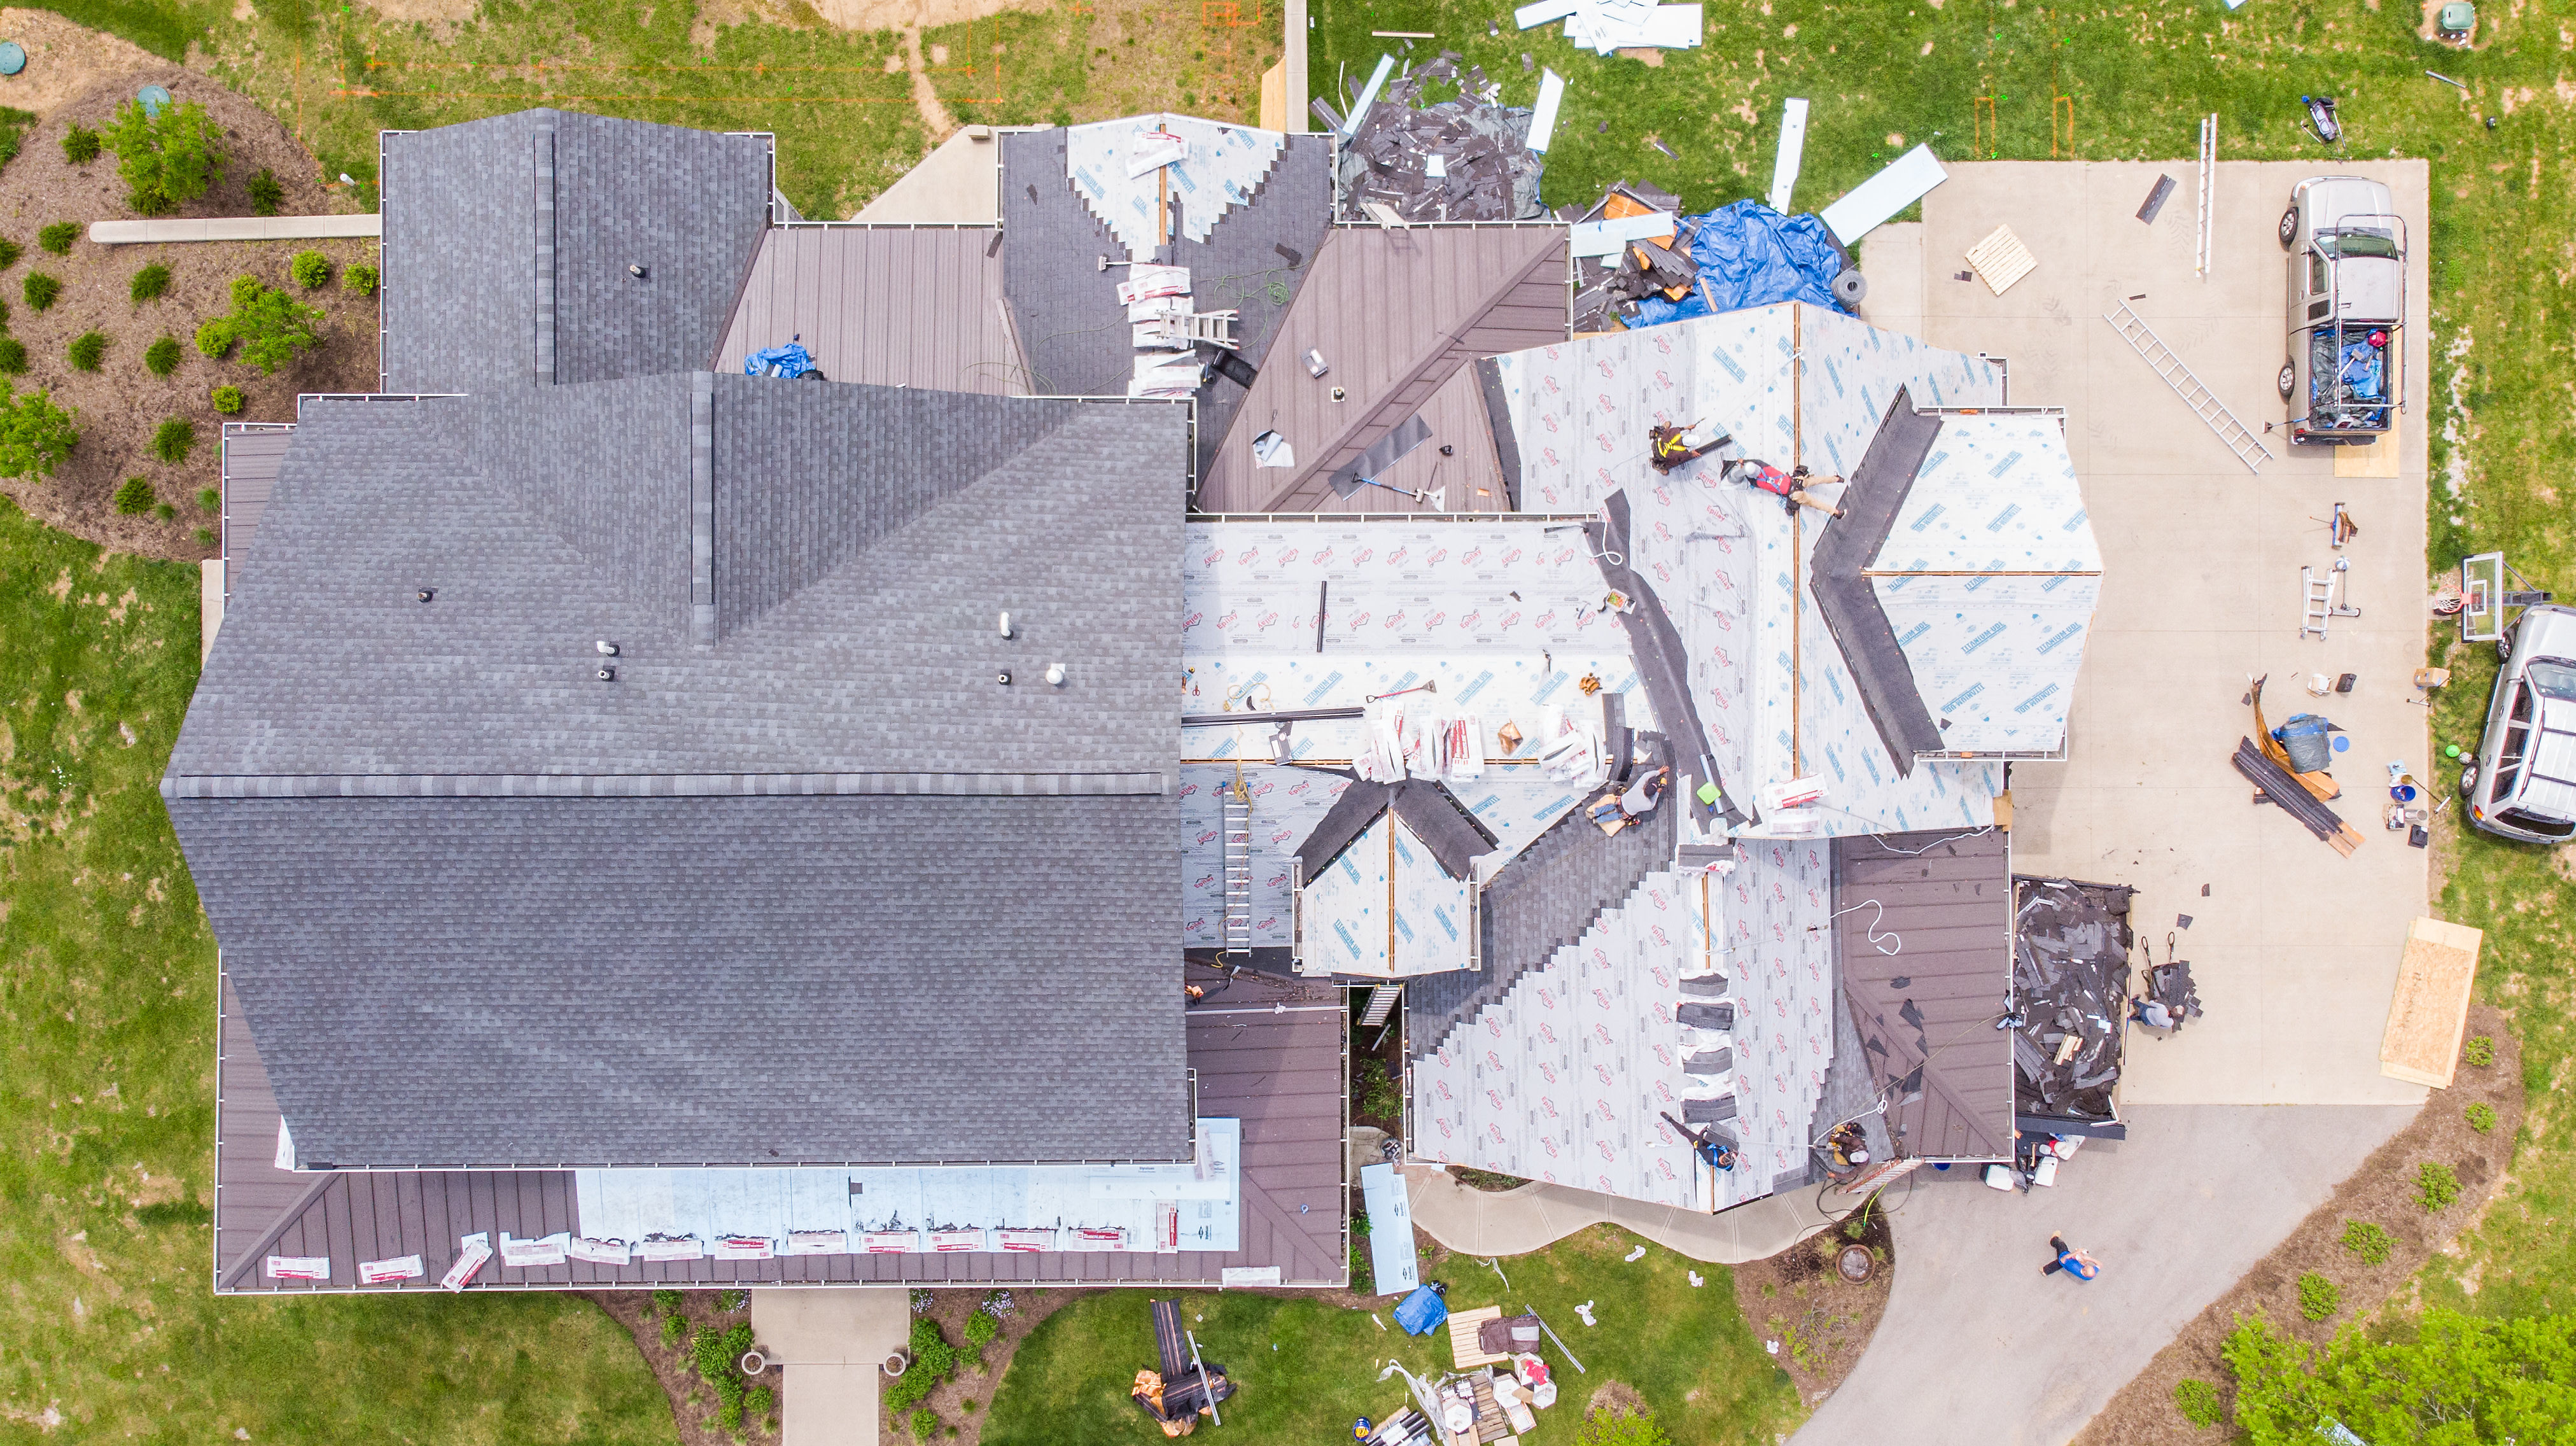 Looking for roof replacement in Lexington, KY? Mulberry Builders provides top quality roof replacement services.